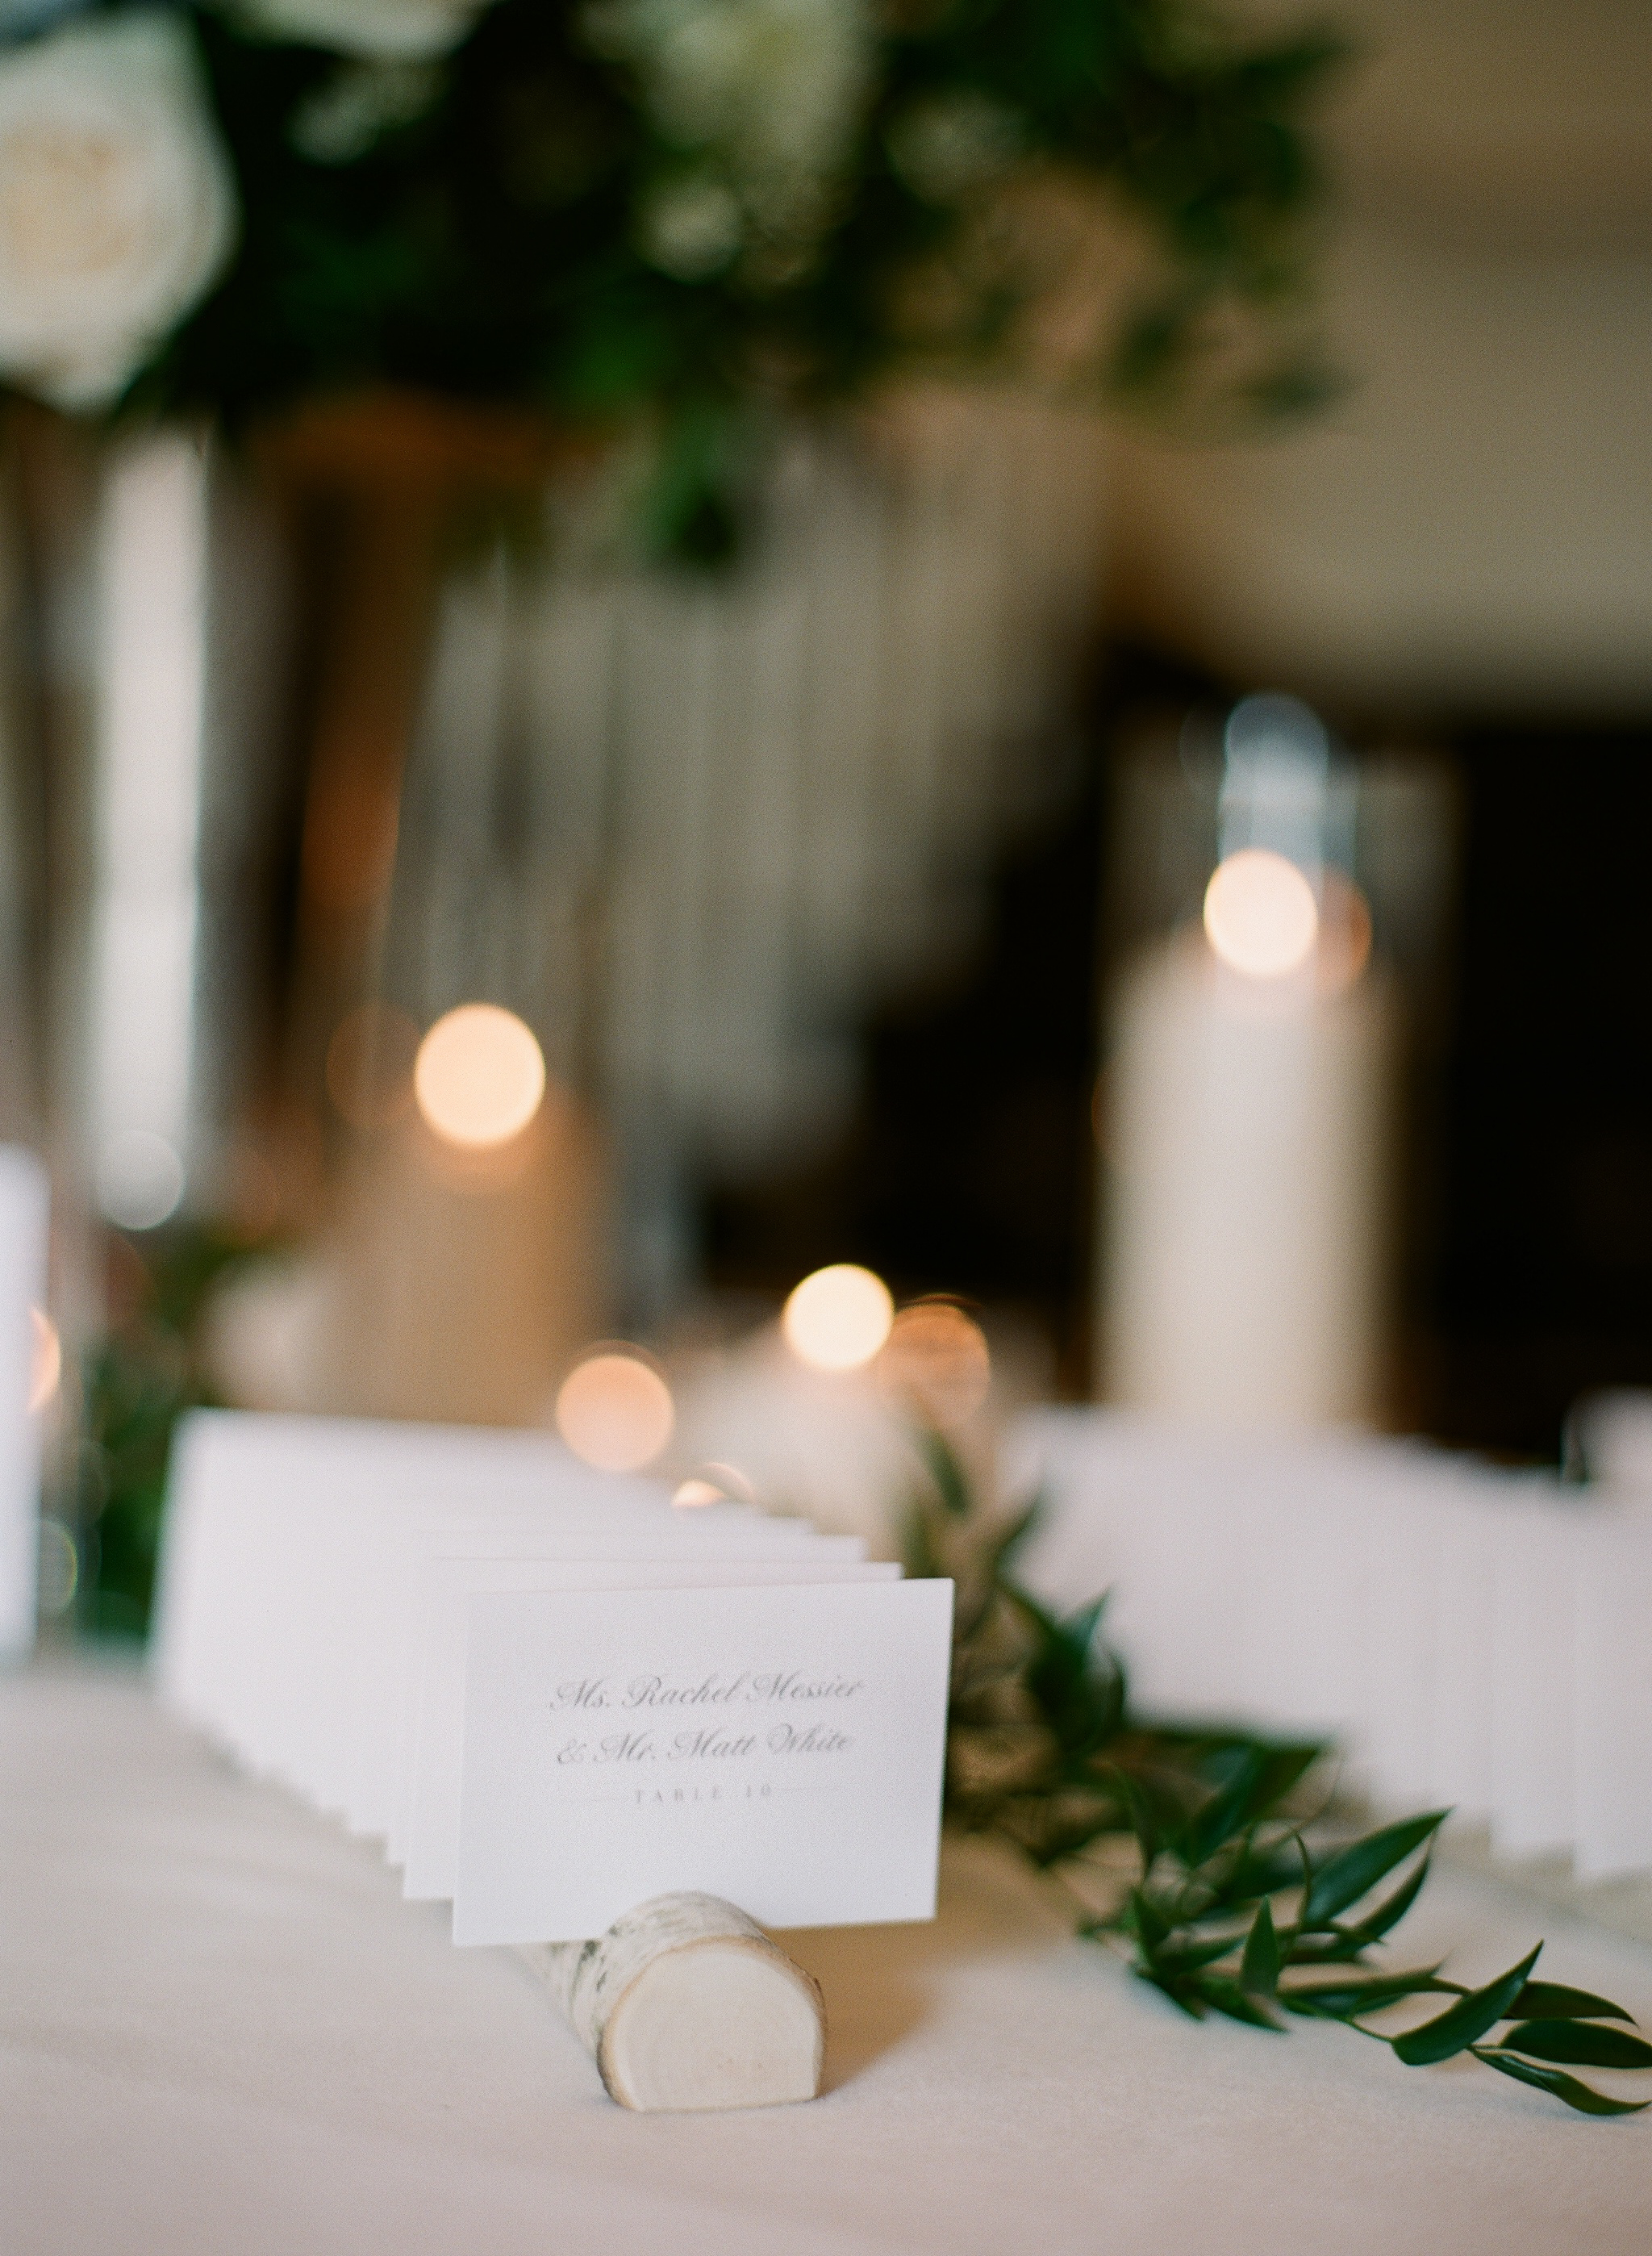 7 Birch Branches With 11 Openings For Place Cards